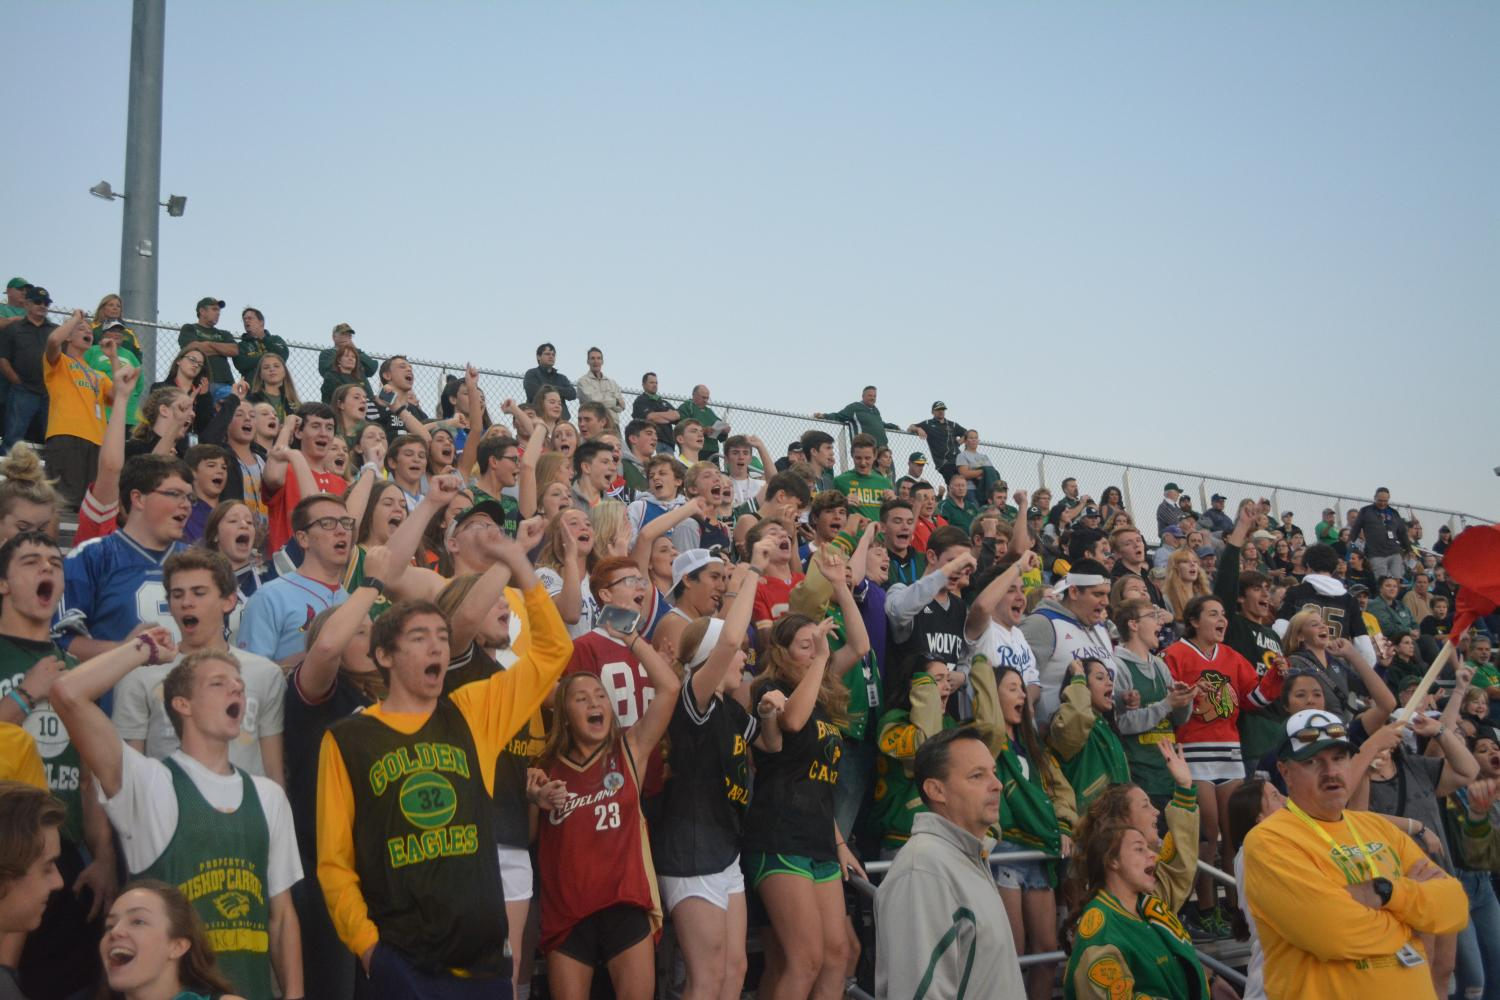 The student sections that Carroll has been bringing out also deserve a shoutout